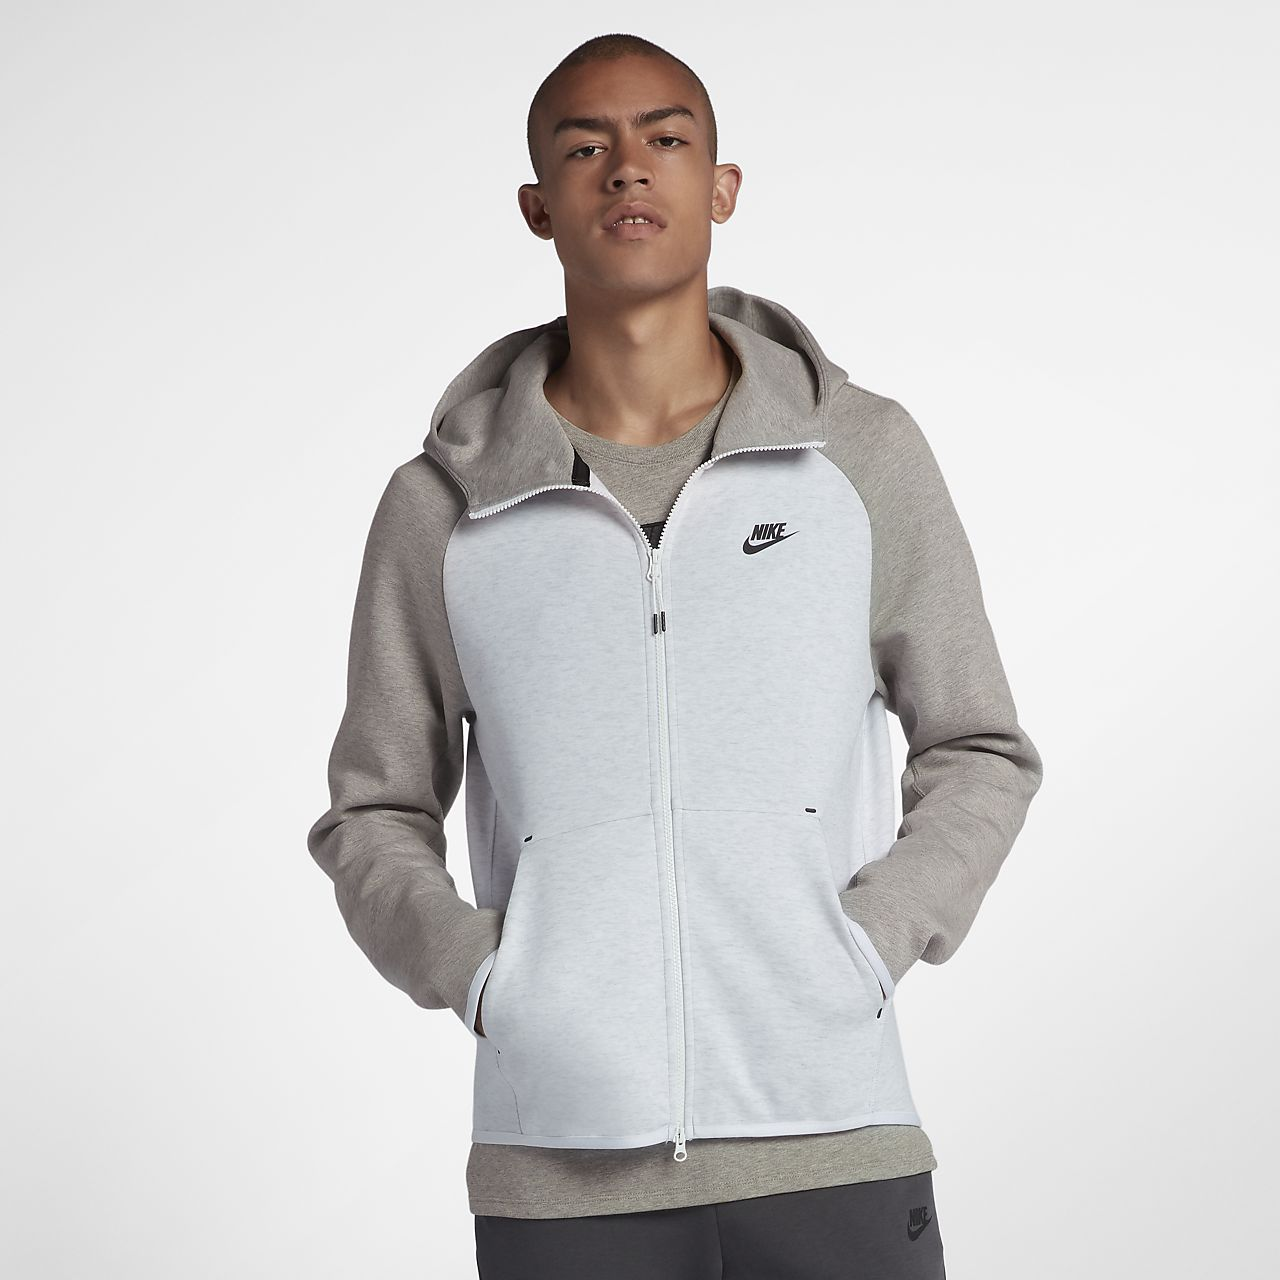 b1e94056974a Nike Sportswear Tech Fleece Men s Full-Zip Hoodie. Nike.com GB